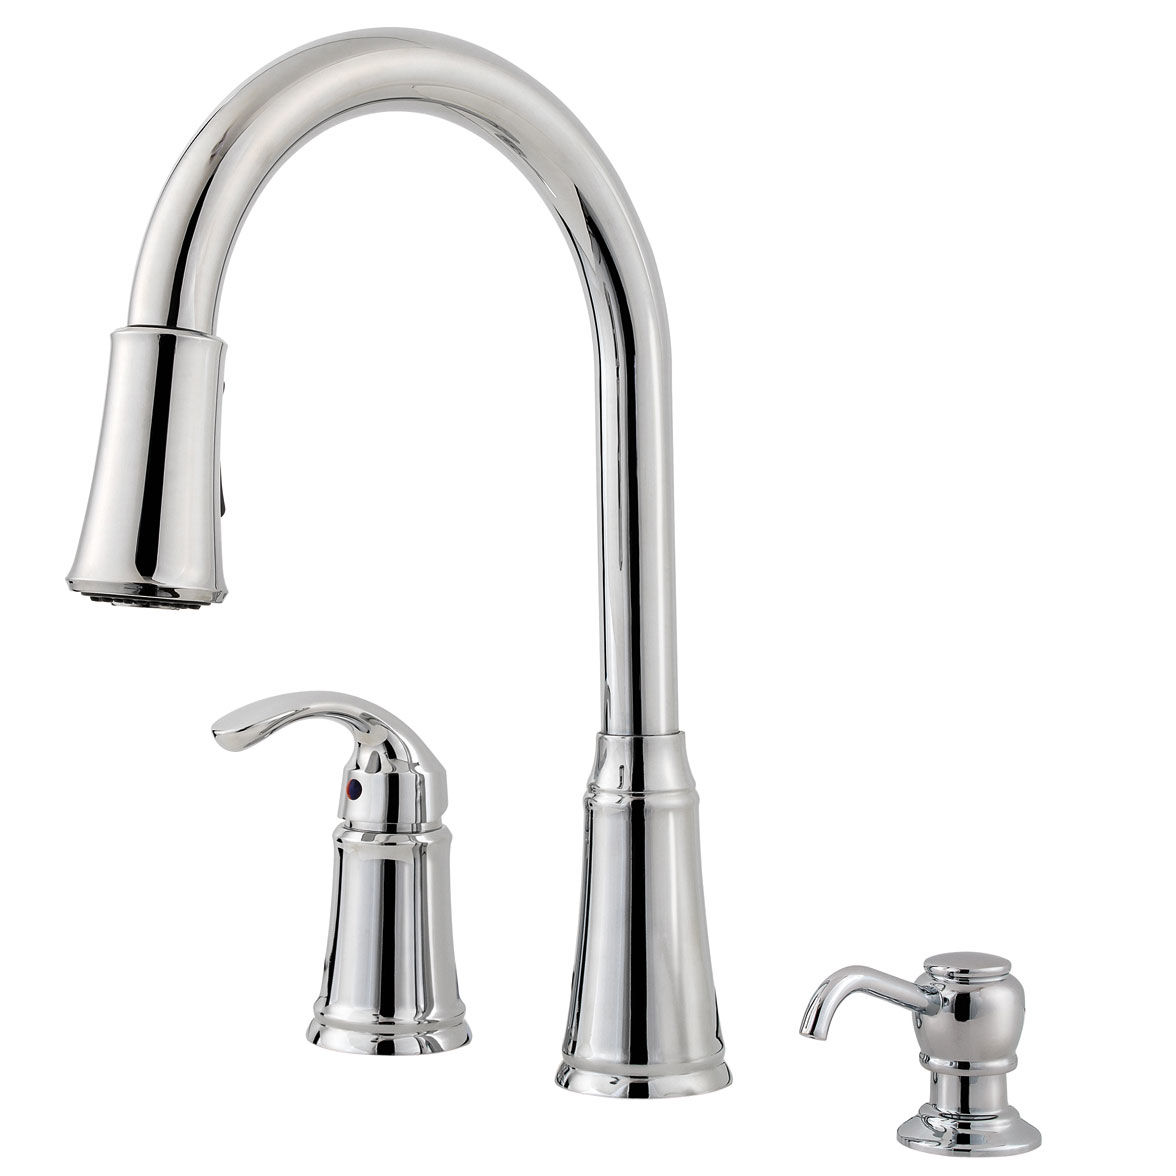 pfister f wkp 650c polished chrome classic pullout spray professional kitchen faucet with soap dispenser faucetcom - Pfister Kitchen Faucet